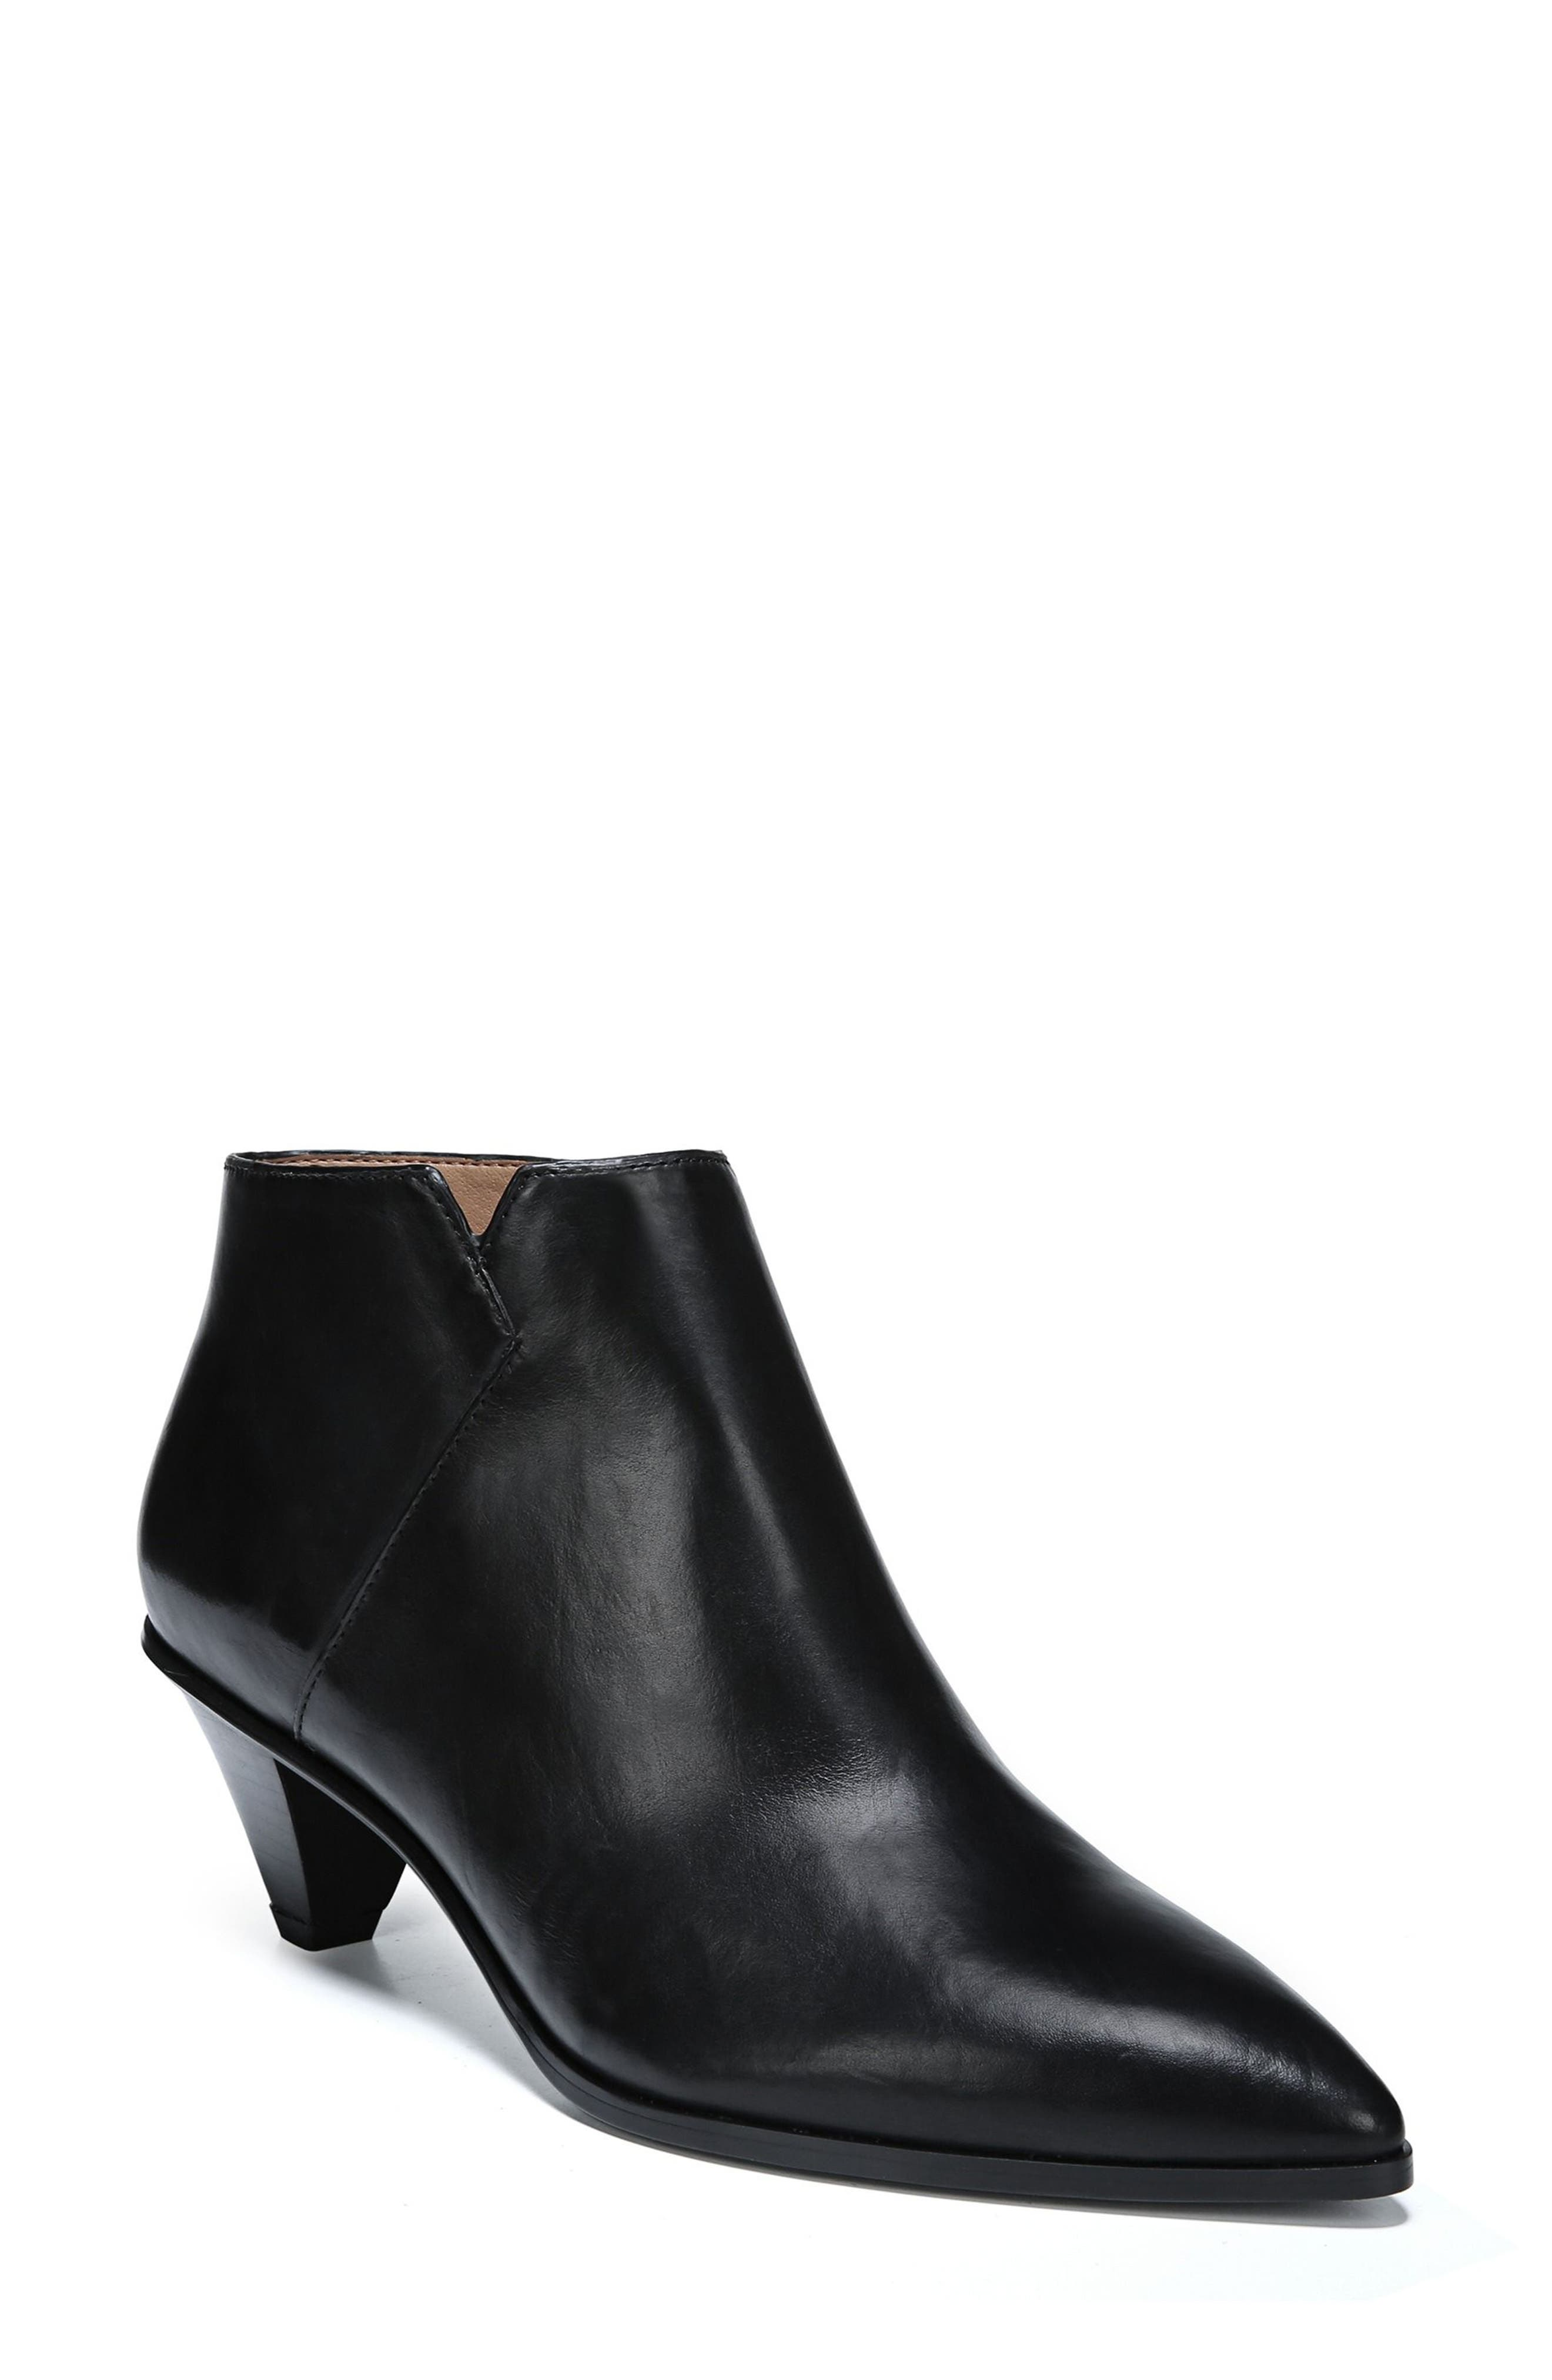 Spectra Bootie,                         Main,                         color, BLACK LEATHER